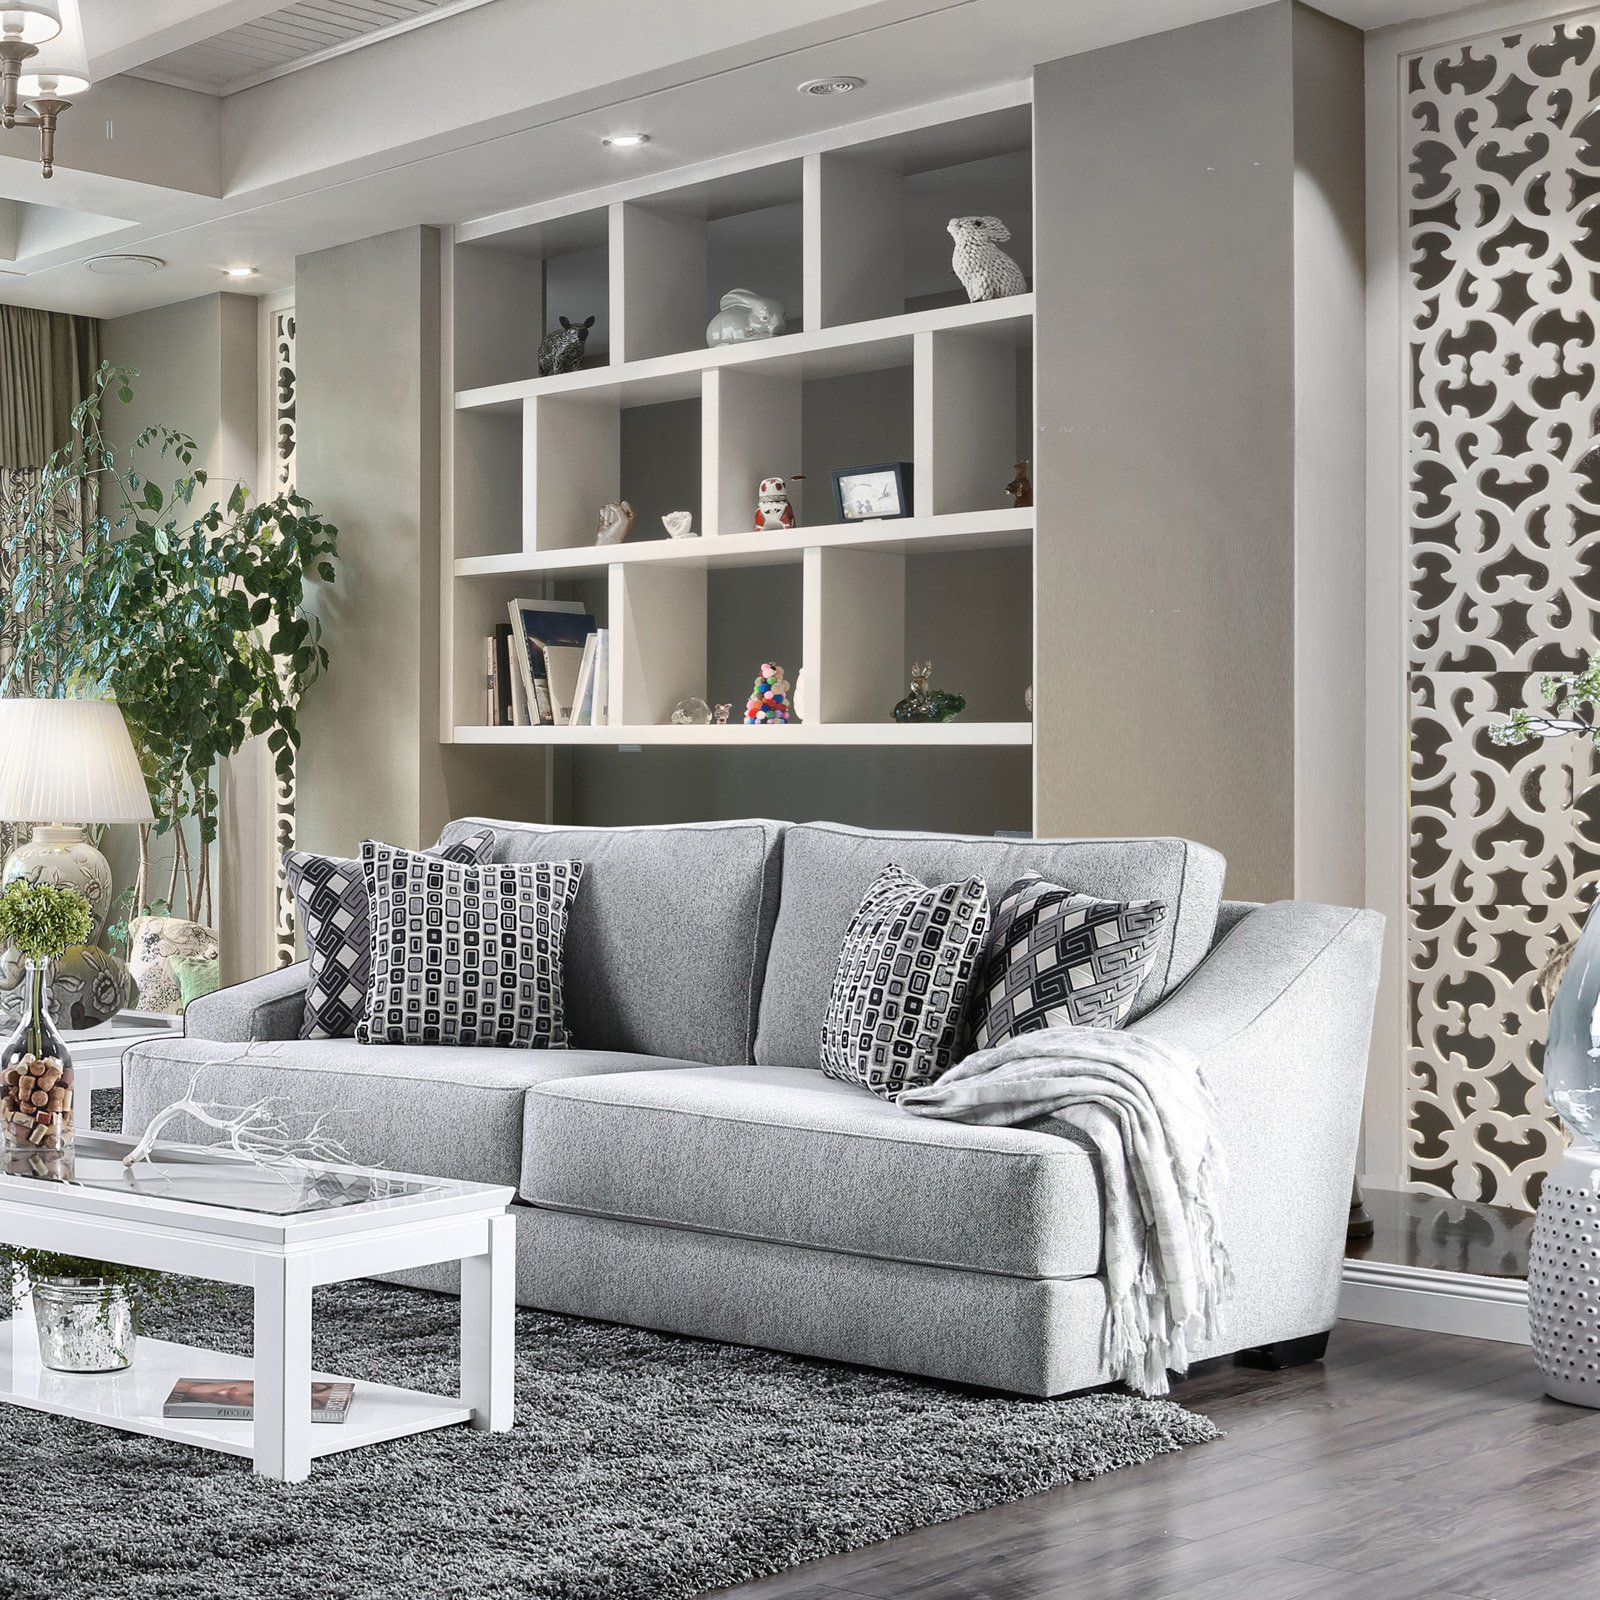 Delicieux Furniture Of America Ariadynne Contemporary Style Chenille Fabric Sofa